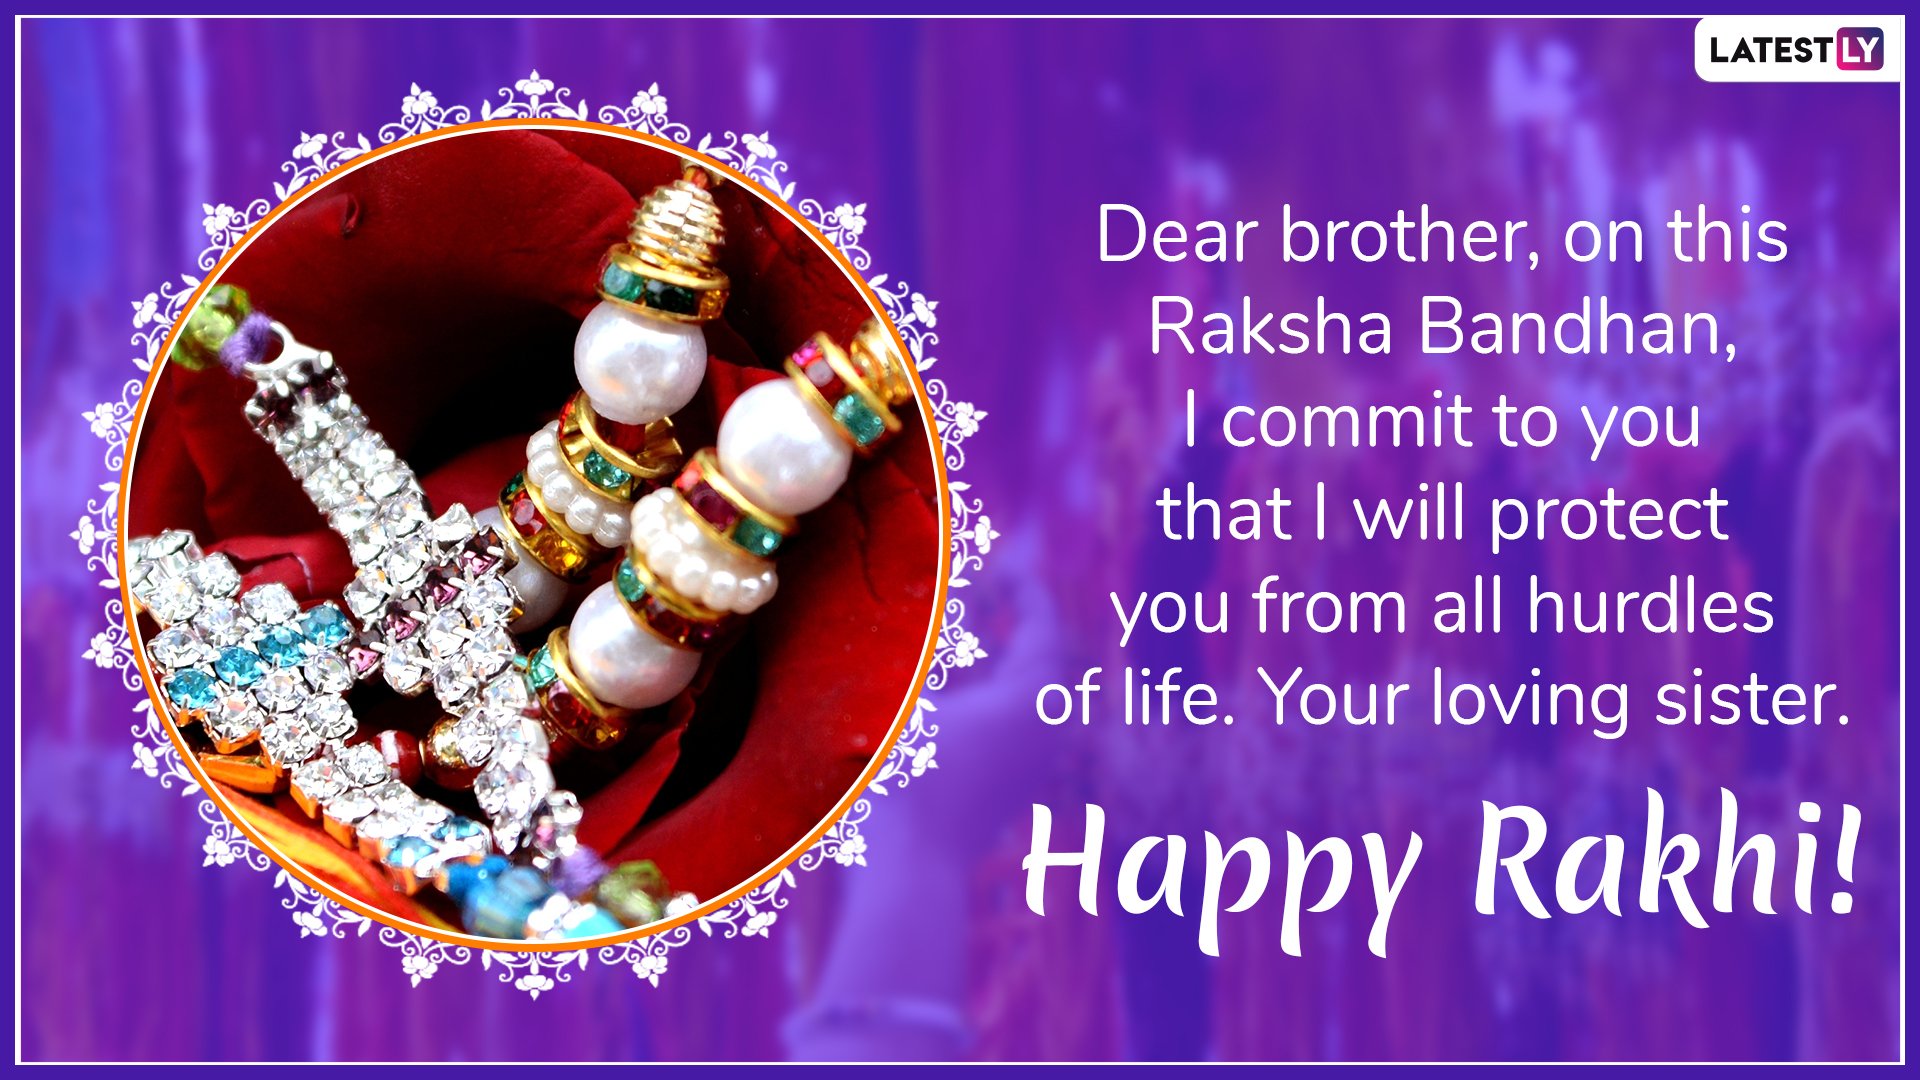 Raksha Bandhan 2019 WhatsApp wish 3 (Photo Credits: File Image)